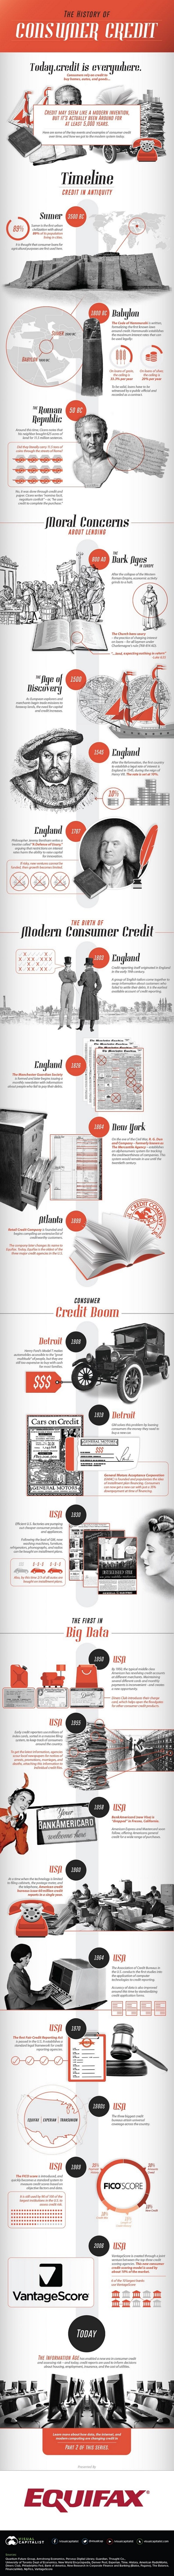 The History of Consumer Credit